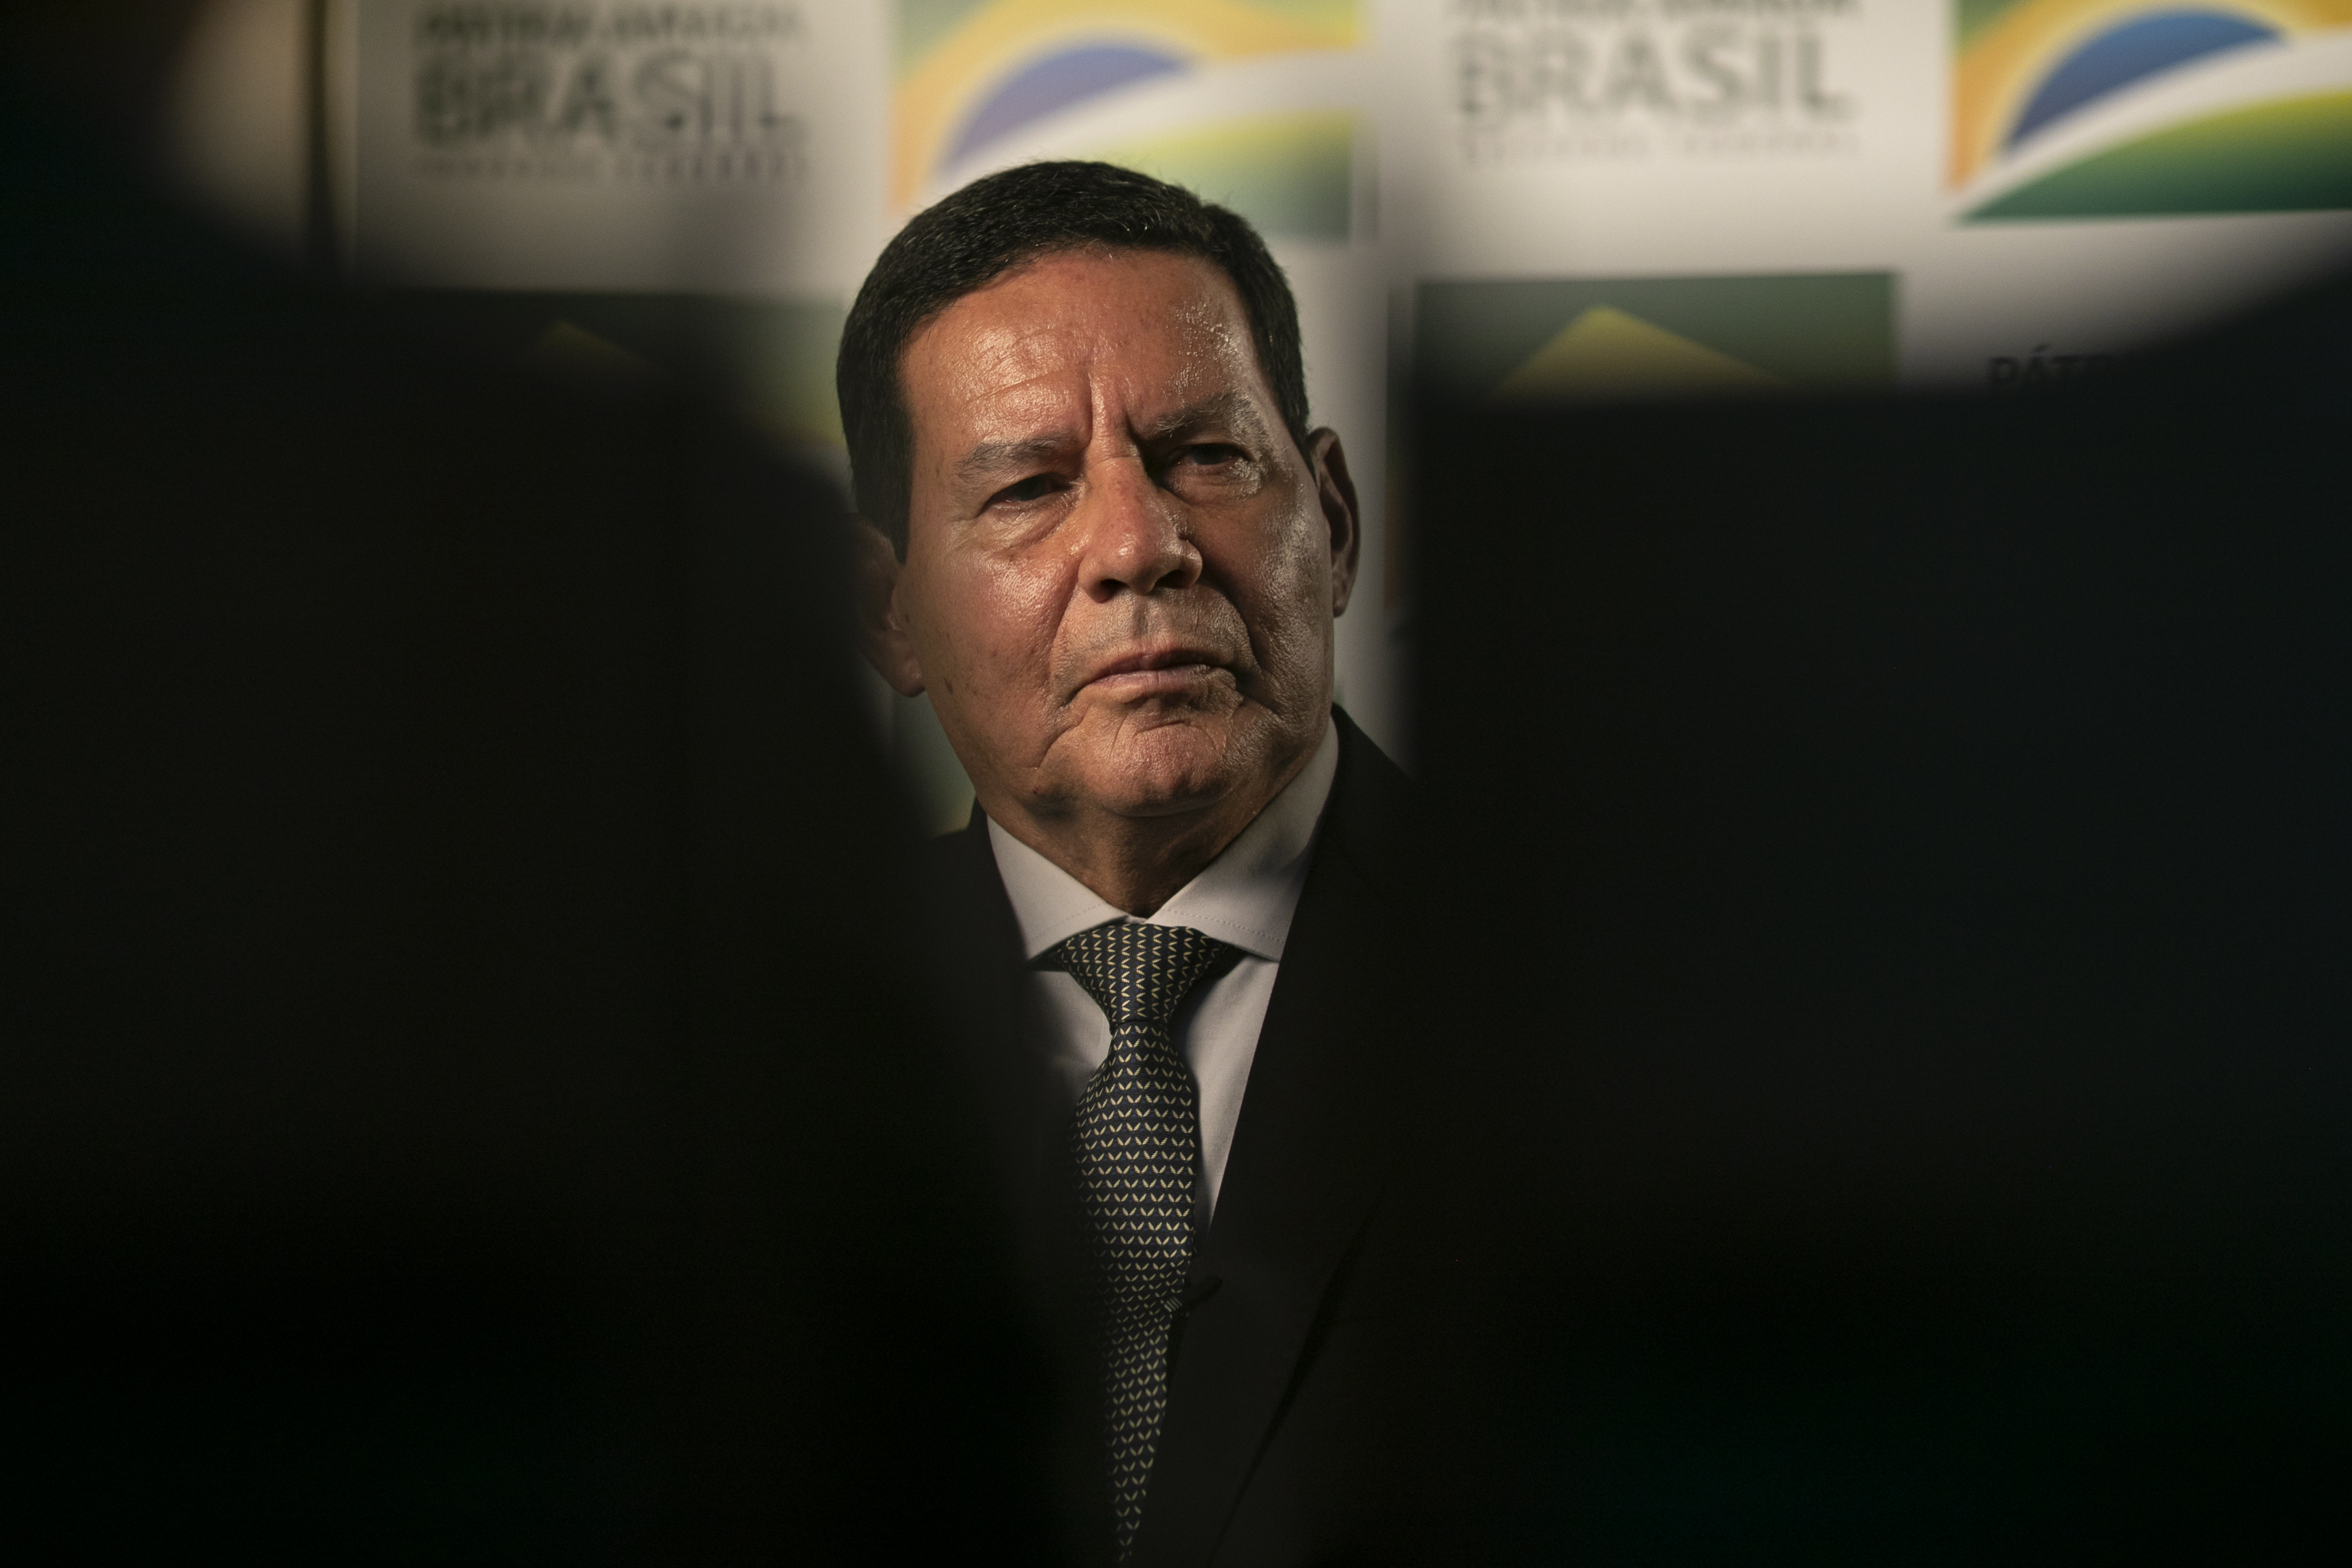 """Brazilian Vice President Hamilton Mourao gestures during an exclusive interview with AFP in his office in the annex of the Planalto Palace in Brasilia,Brazil on February 21, 2019. - Brazilian Vice President Hamilton Mourao on Thursday dismissed US threats of military intervention in Venezuela as """"premature"""" and said it """"wouldn't make sense."""" (Photo by Sergio LIMA / AFP)        (Photo credit should read SERGIO LIMA/AFP via Getty Images)"""